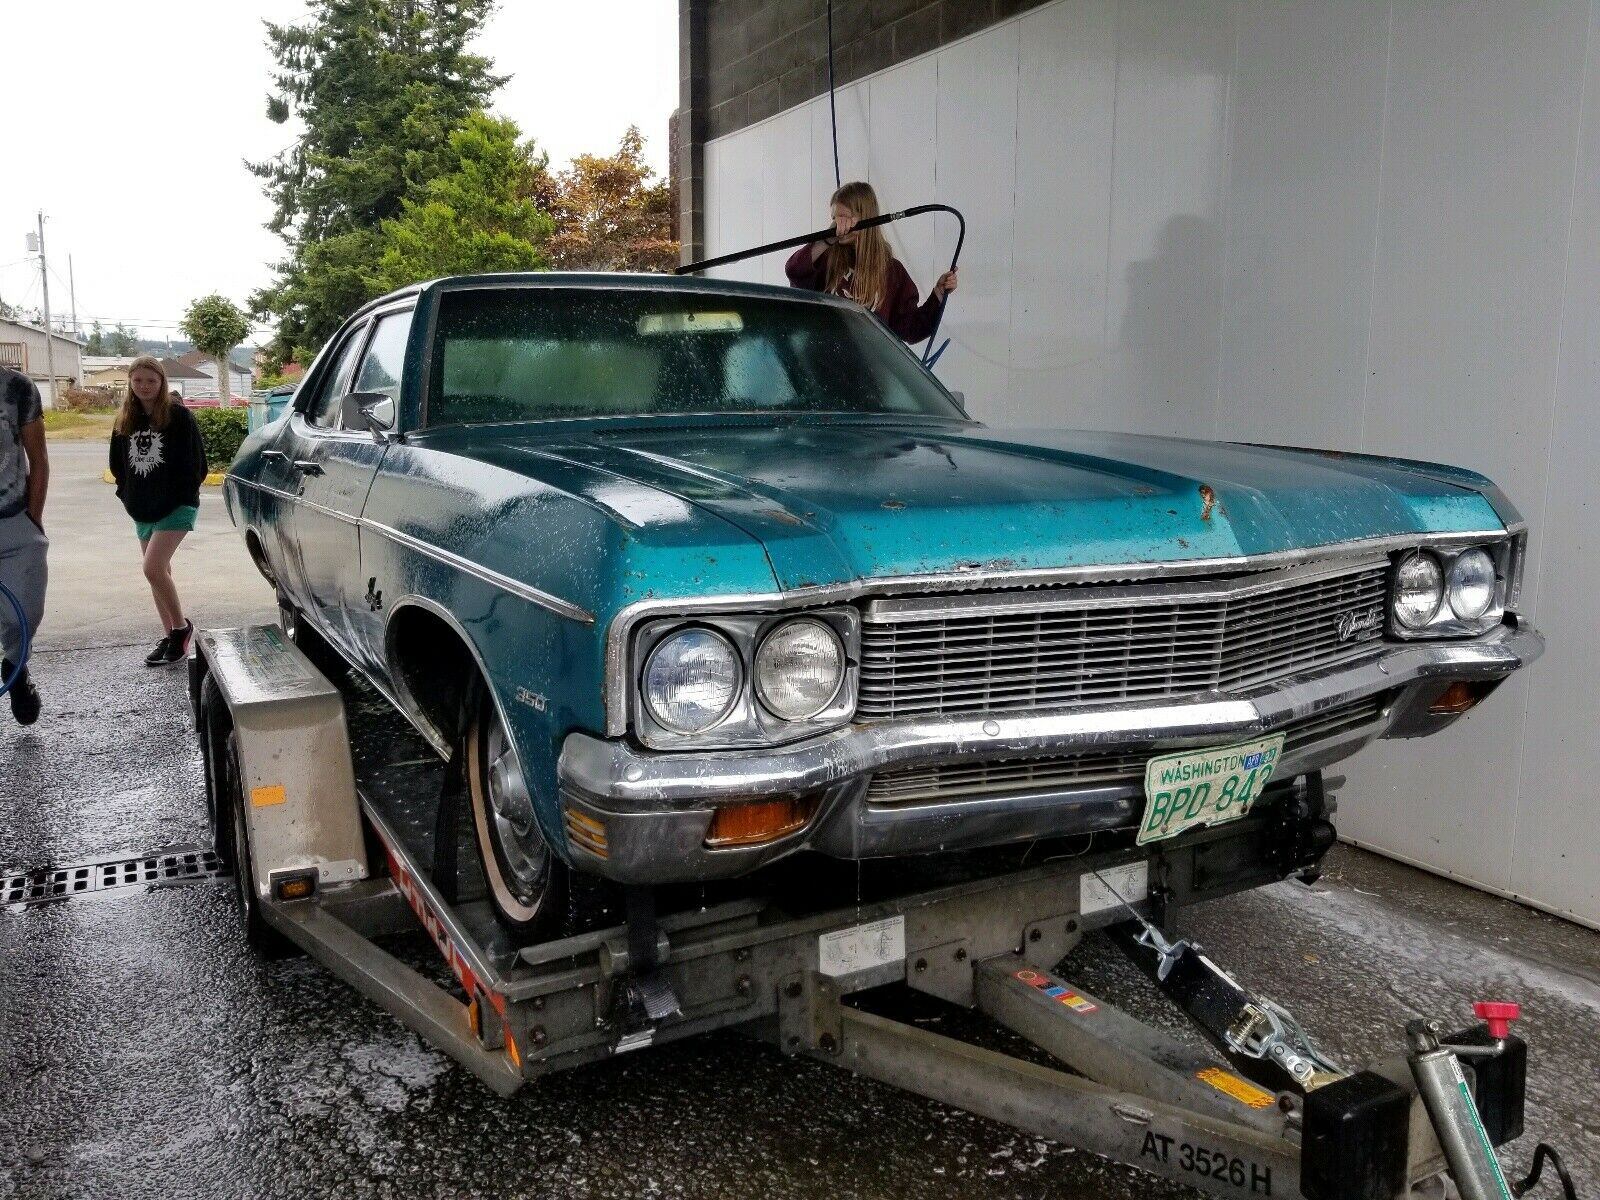 1970-chevrolet-impala-real-barn-find-hides-good-news-under-the-hood